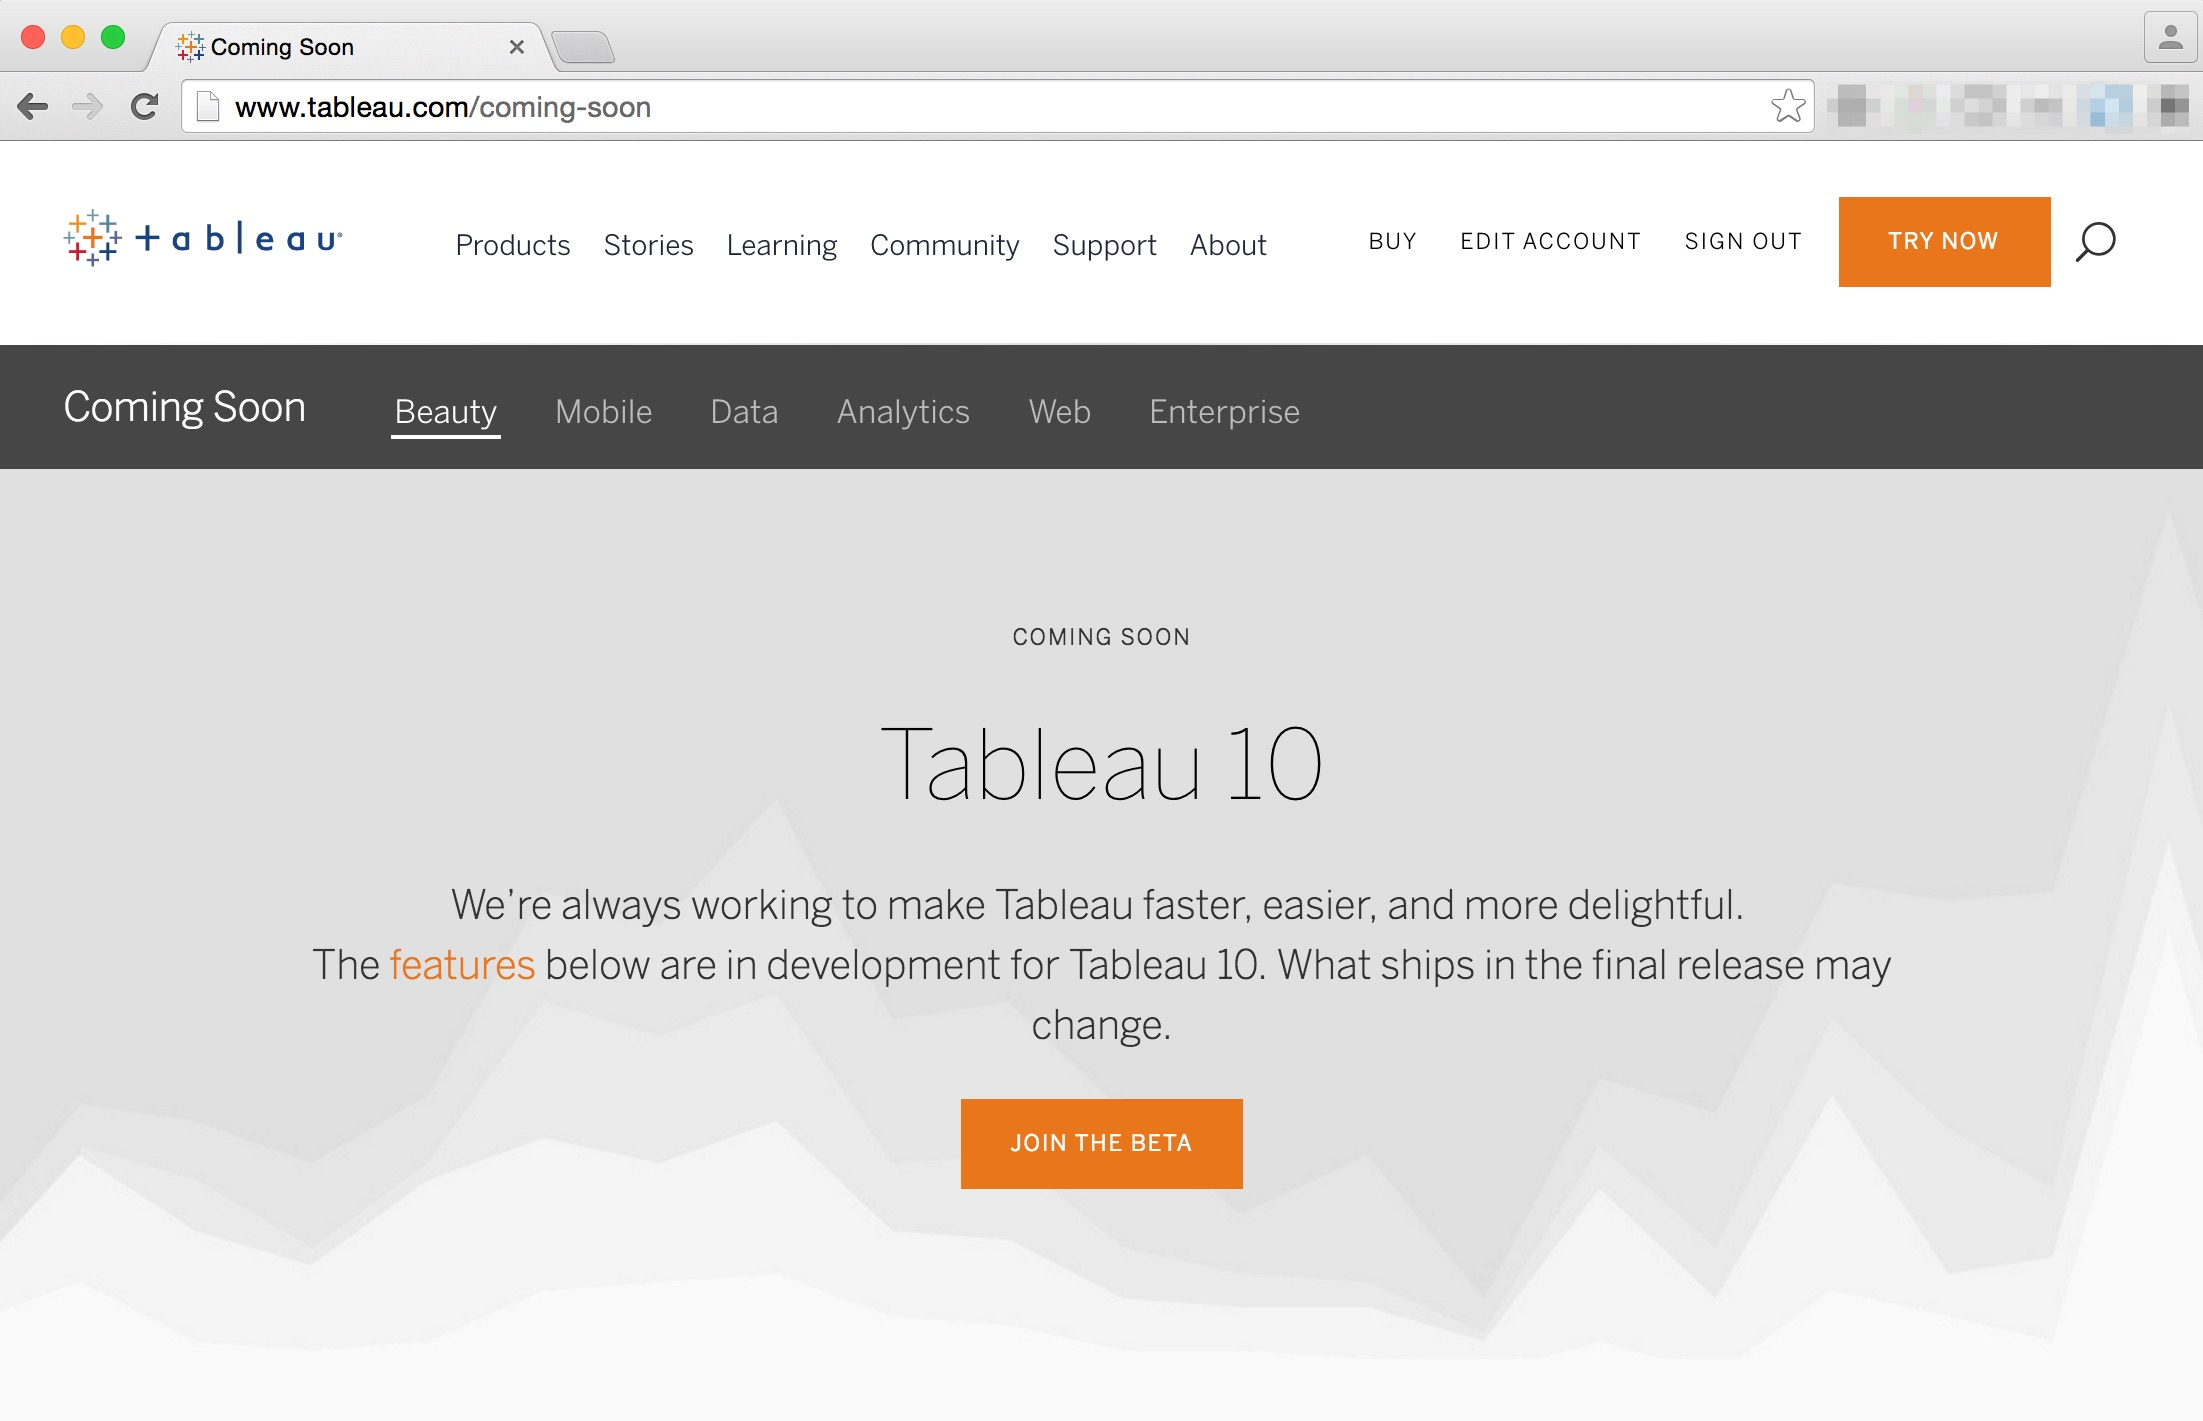 tableau10-comming-soon_00